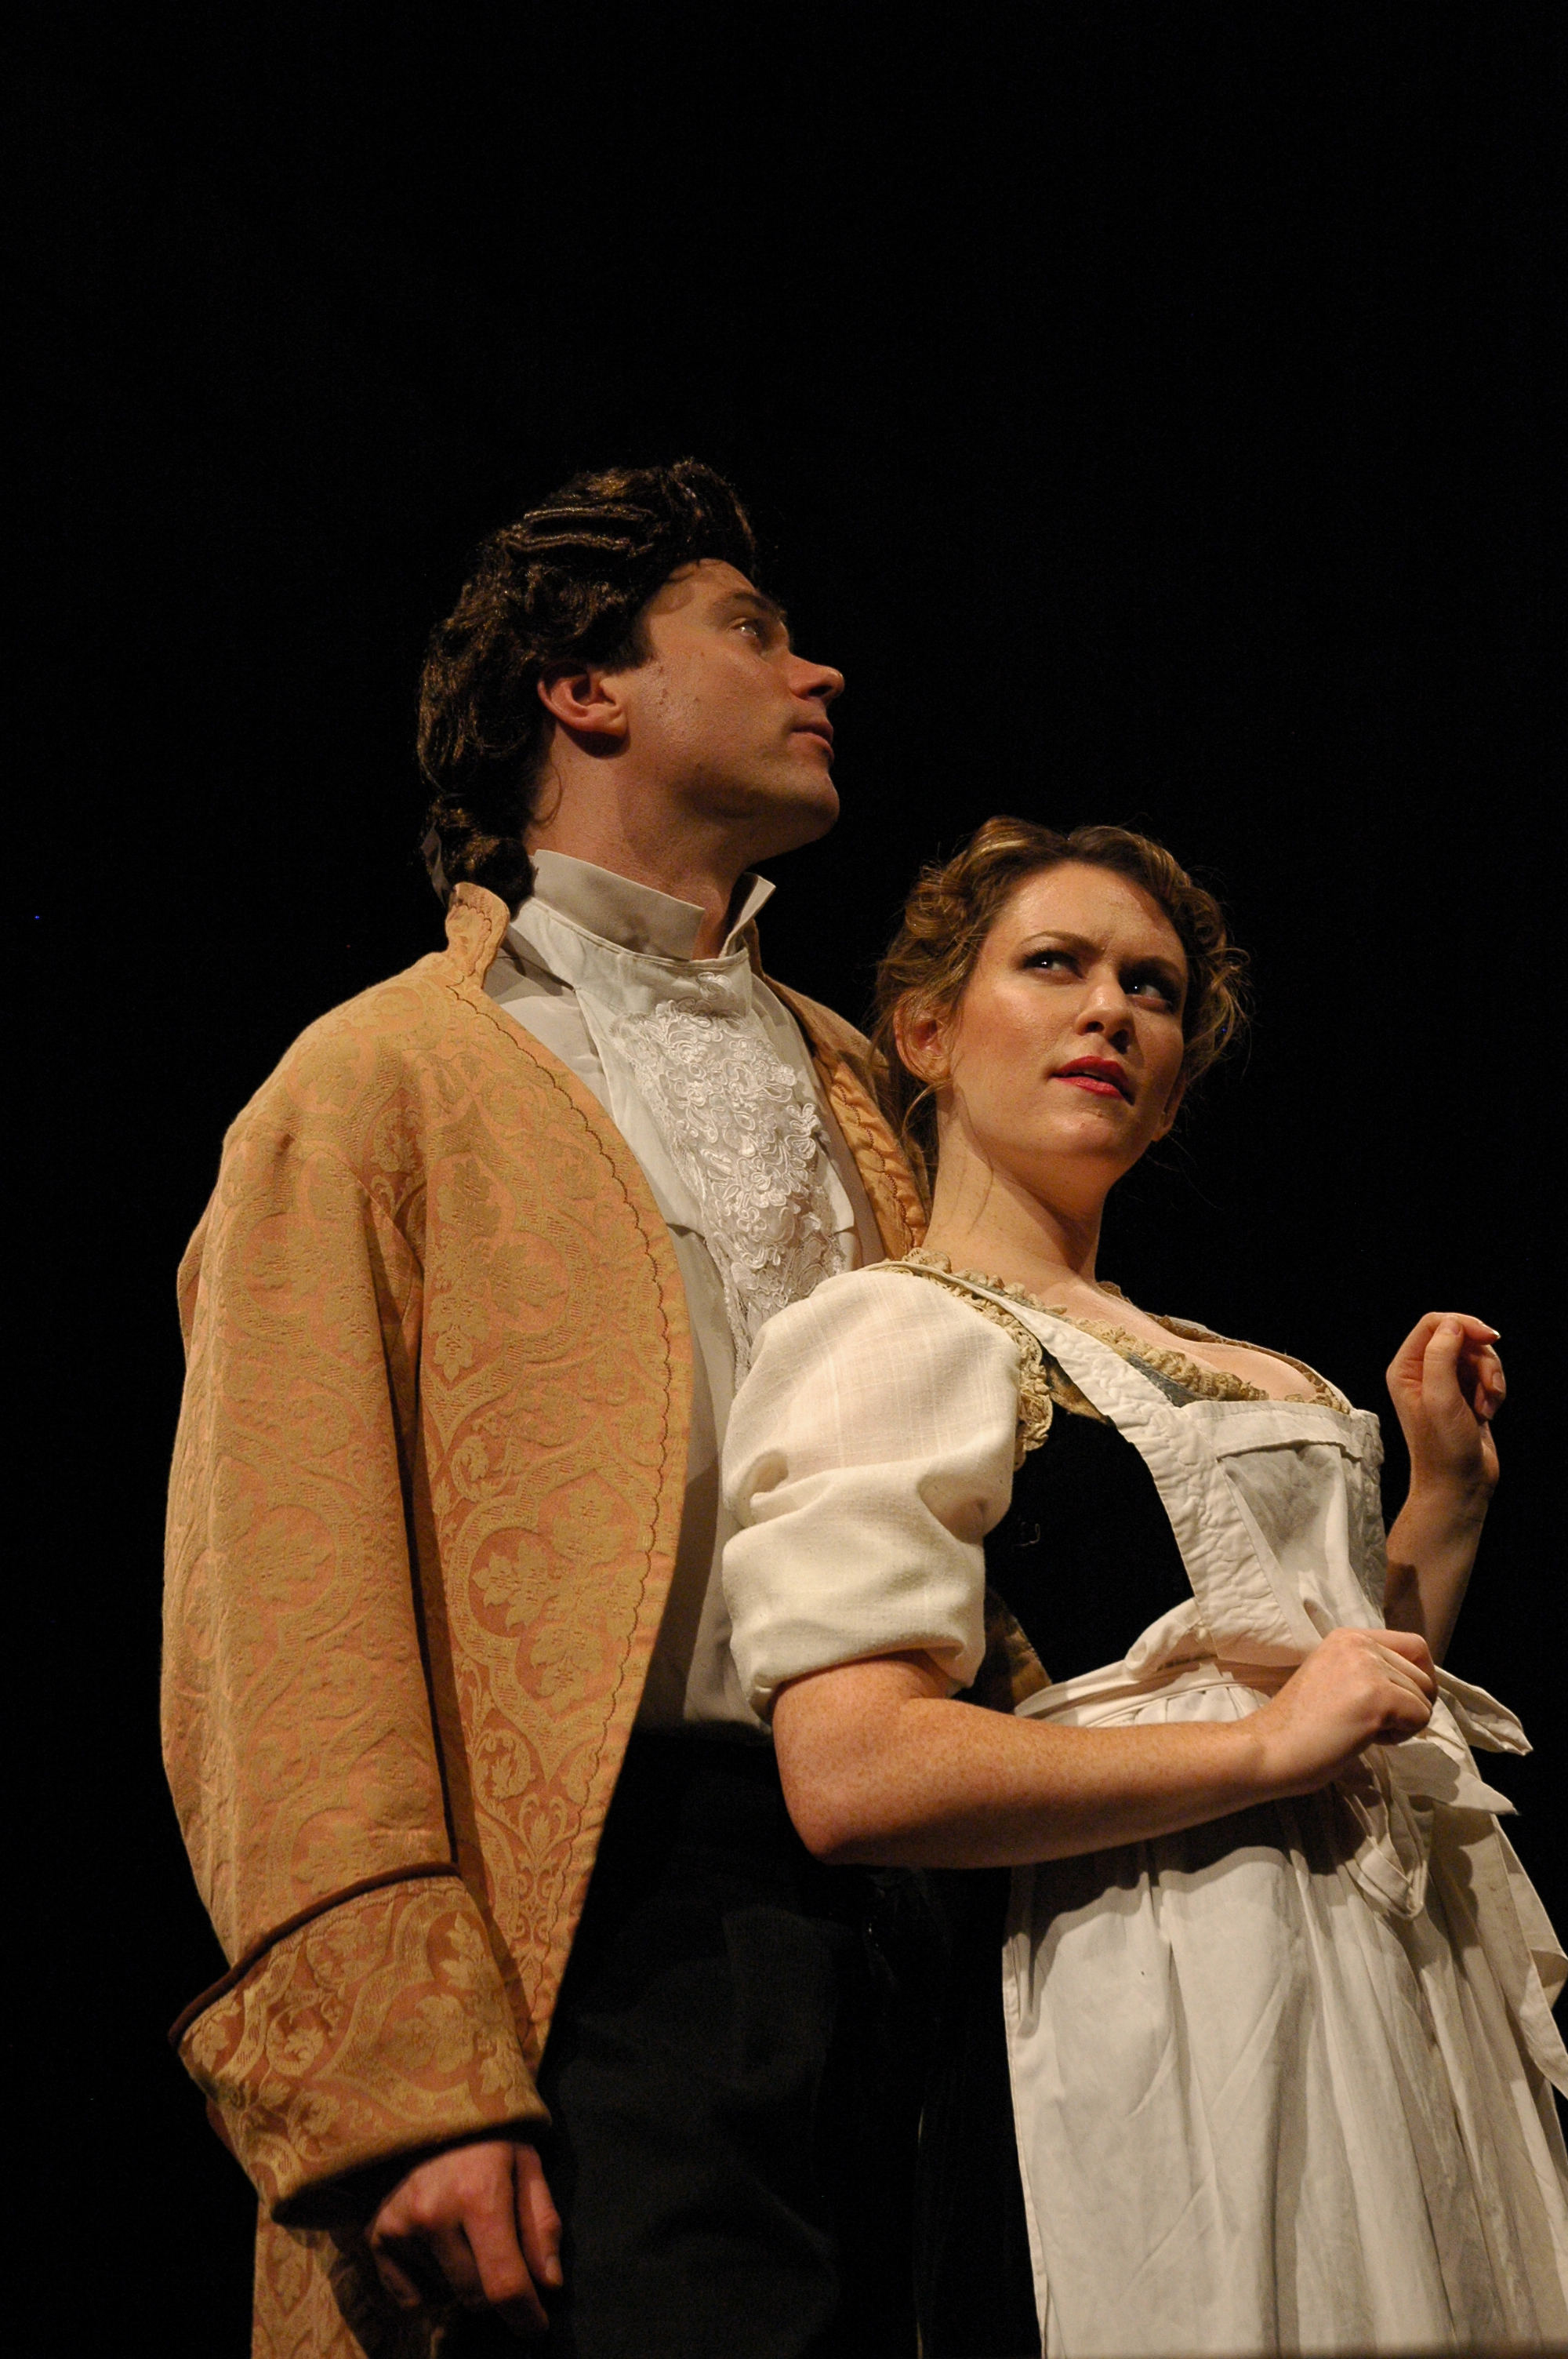 Josh Carpenter (as Marlow), Sonja Field (as Kate Hardcastle) in SHE STOOPS TO CONQUER. Photo by Alexander Burns.